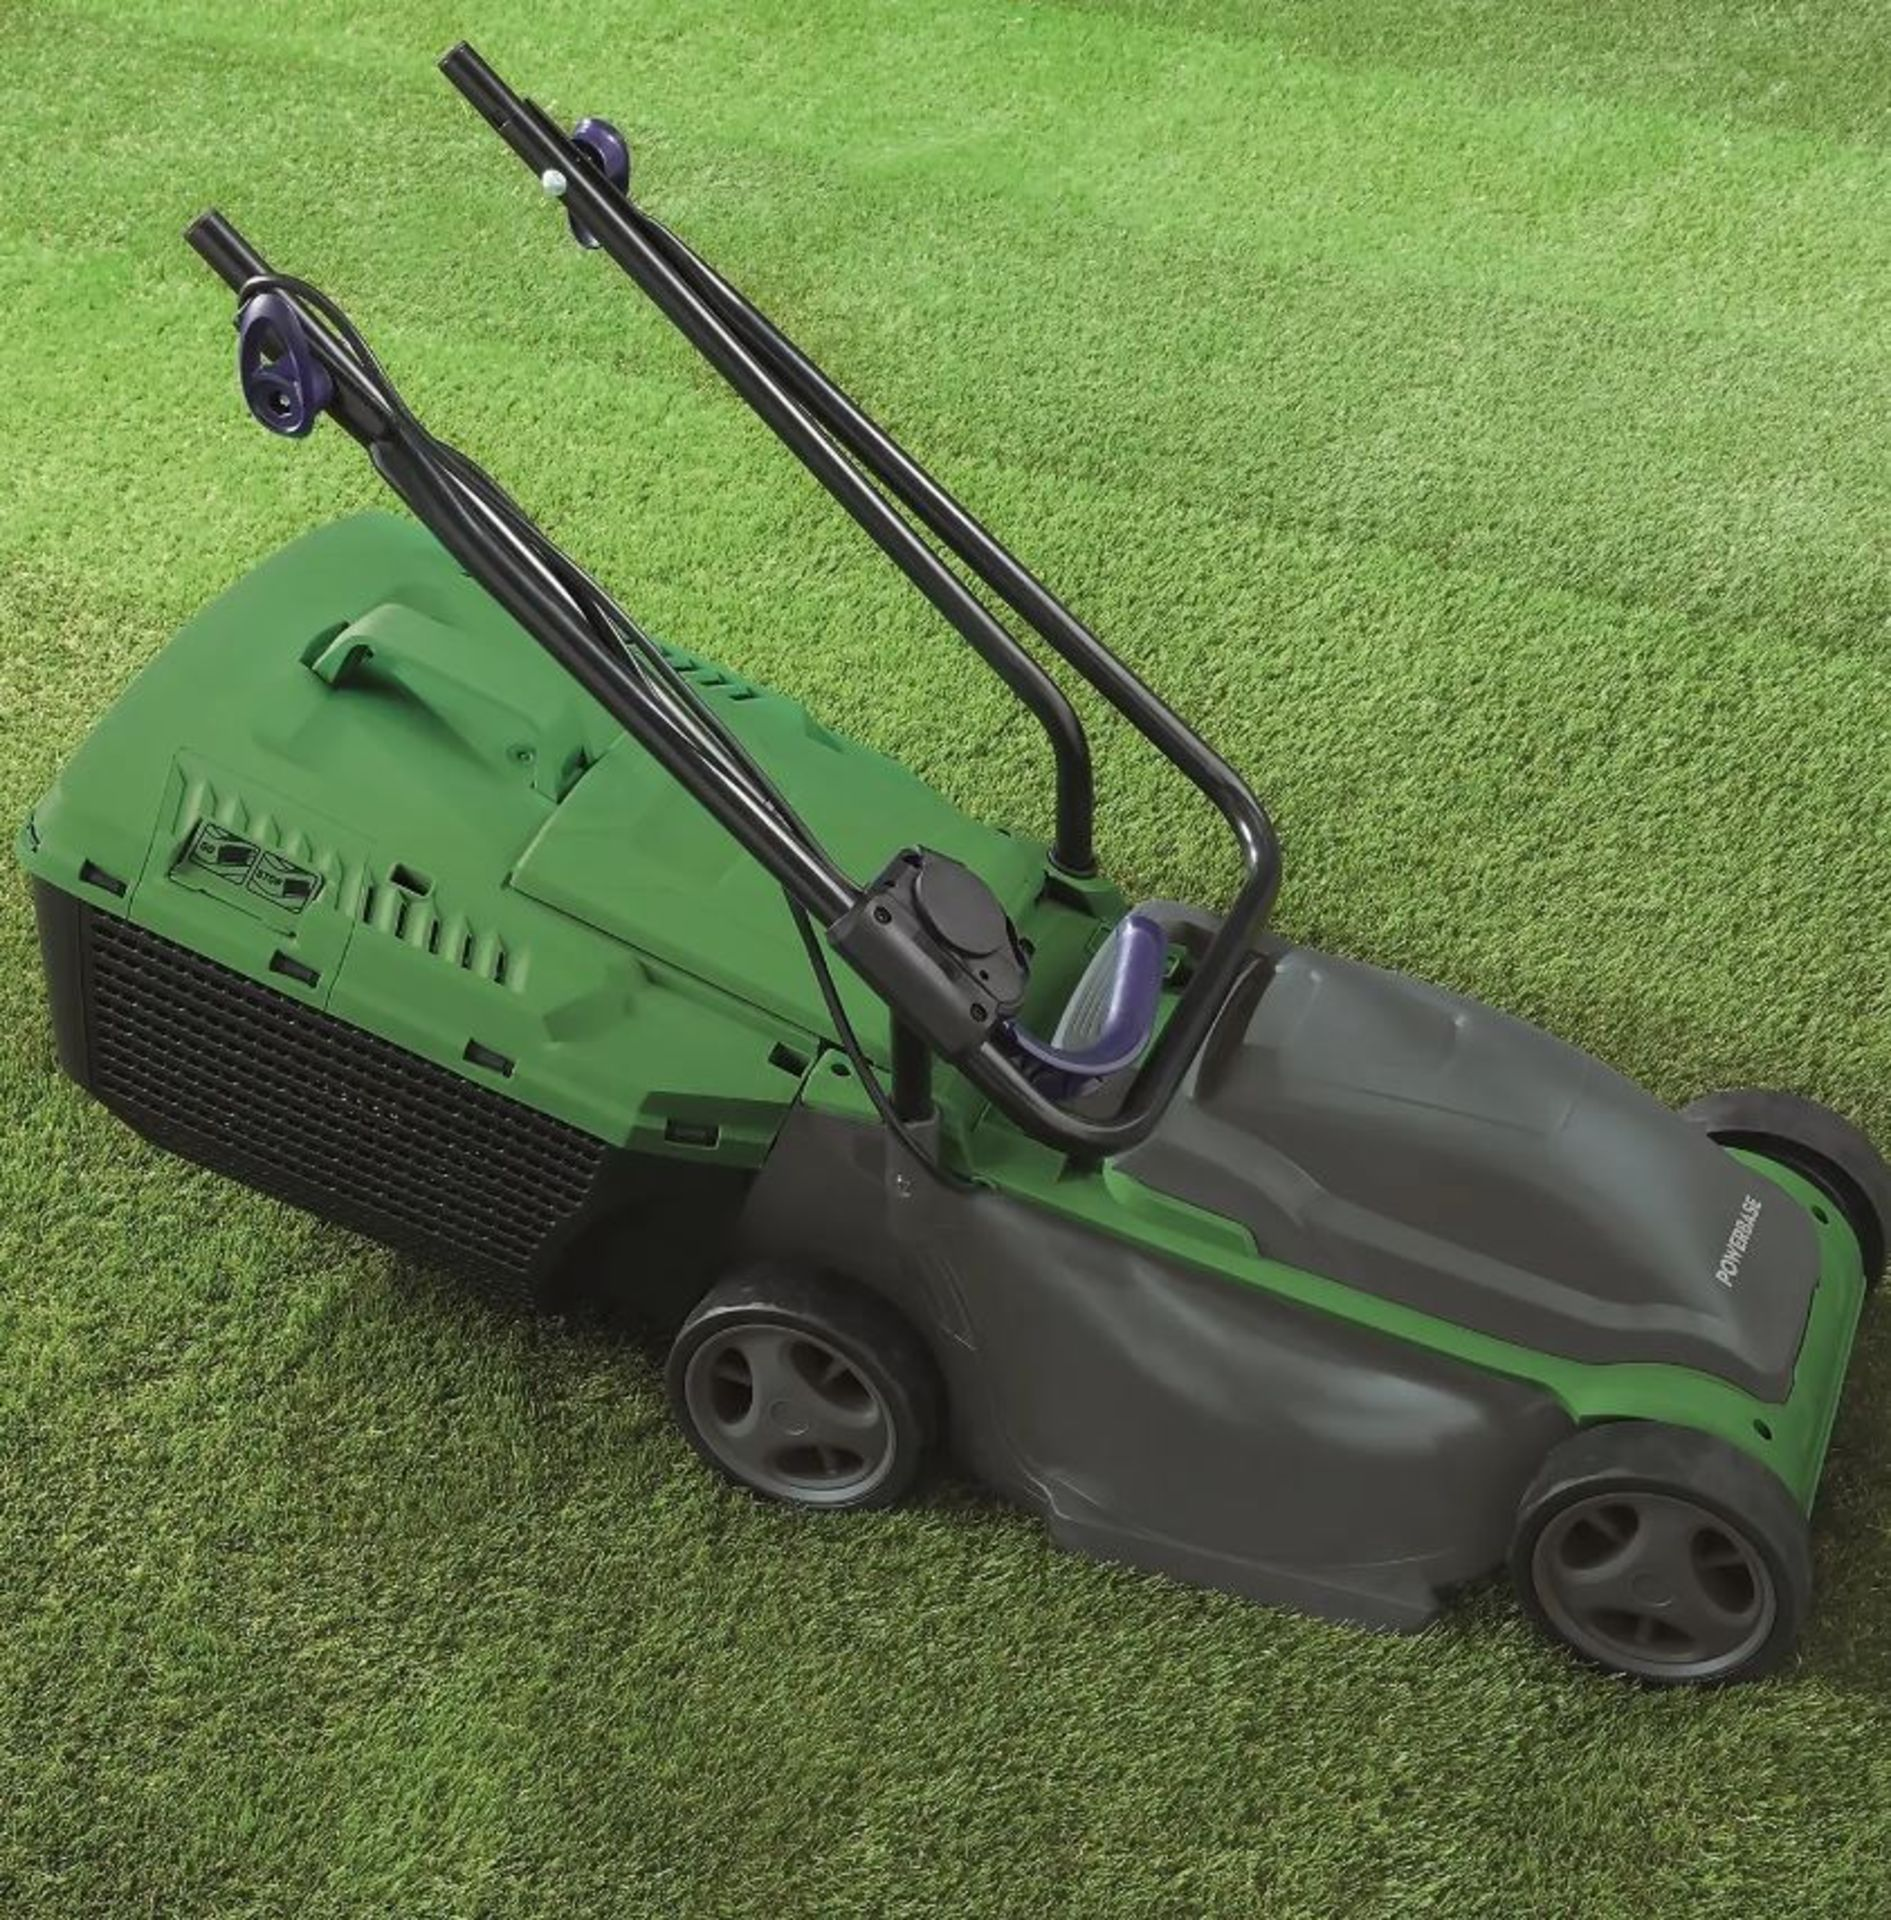 (P8) 1x Powerbase 32cm 1200W Electric Rotary Lawn Mower RRP £59. (Unit Appears Clean, Unused & As - Image 2 of 4